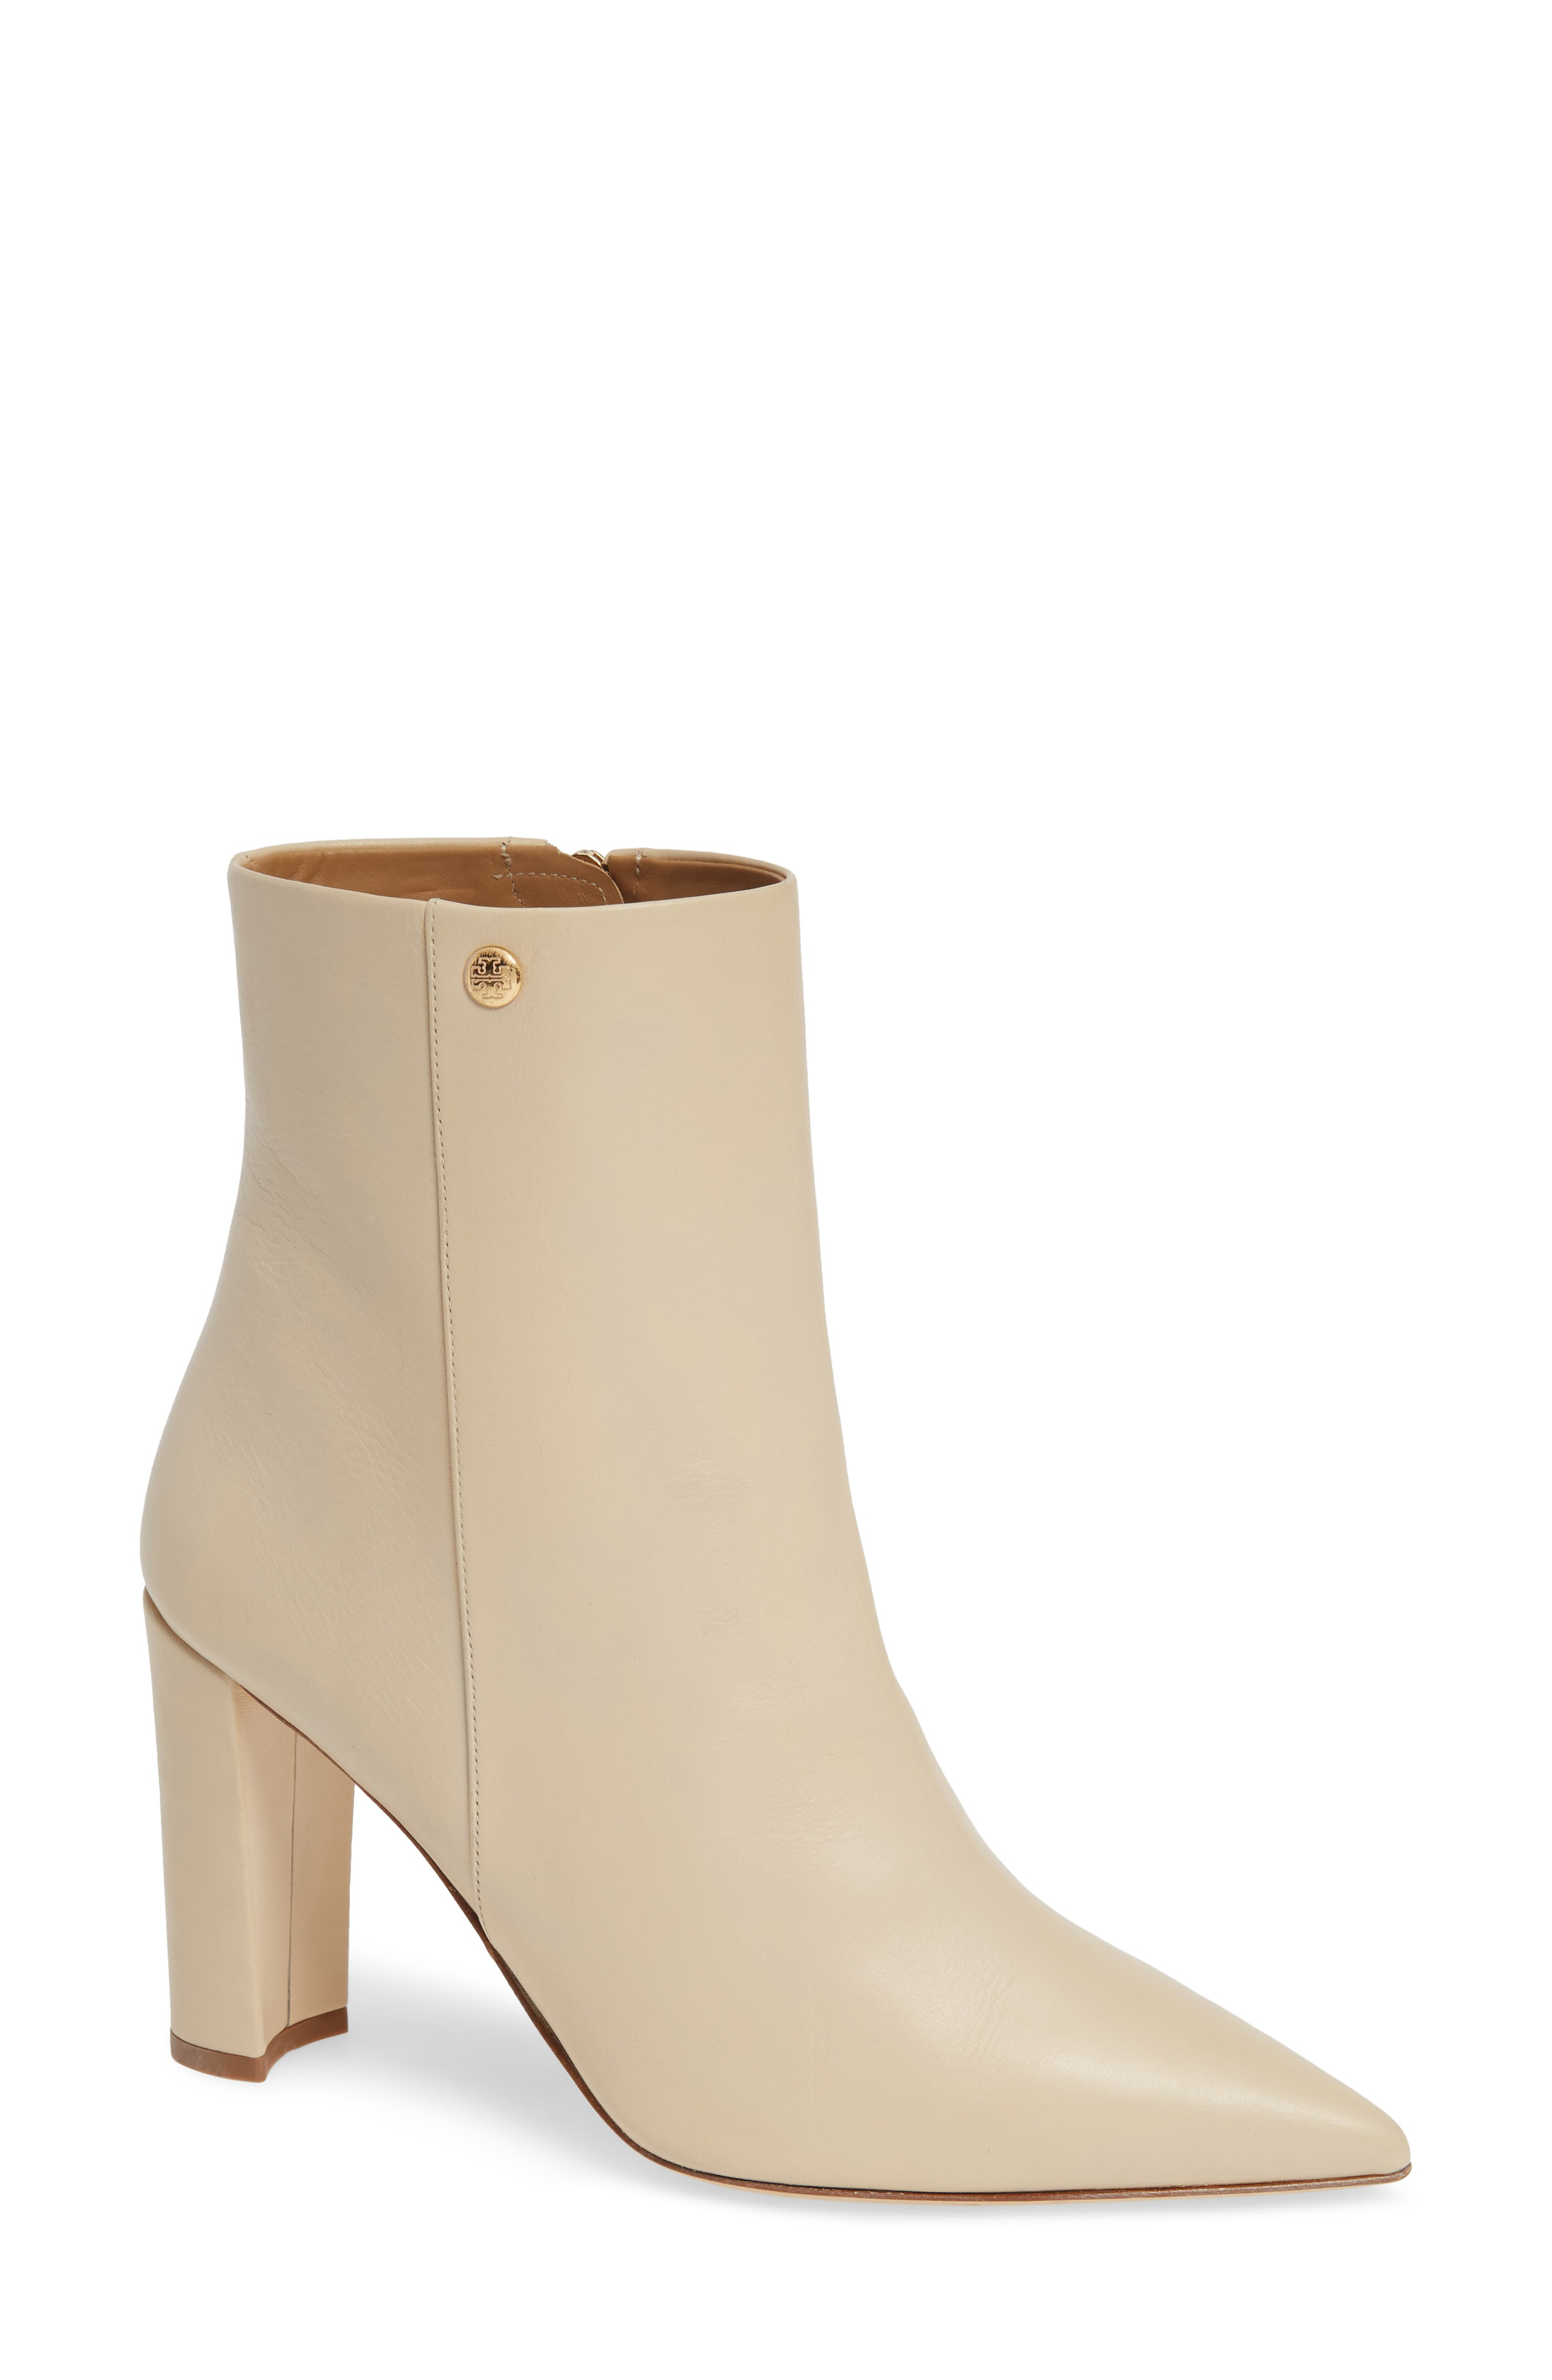 5dde91c3902a Tory Burch Women s Penelope Pointed Toe Leather High-Heel Booties In New  Cream